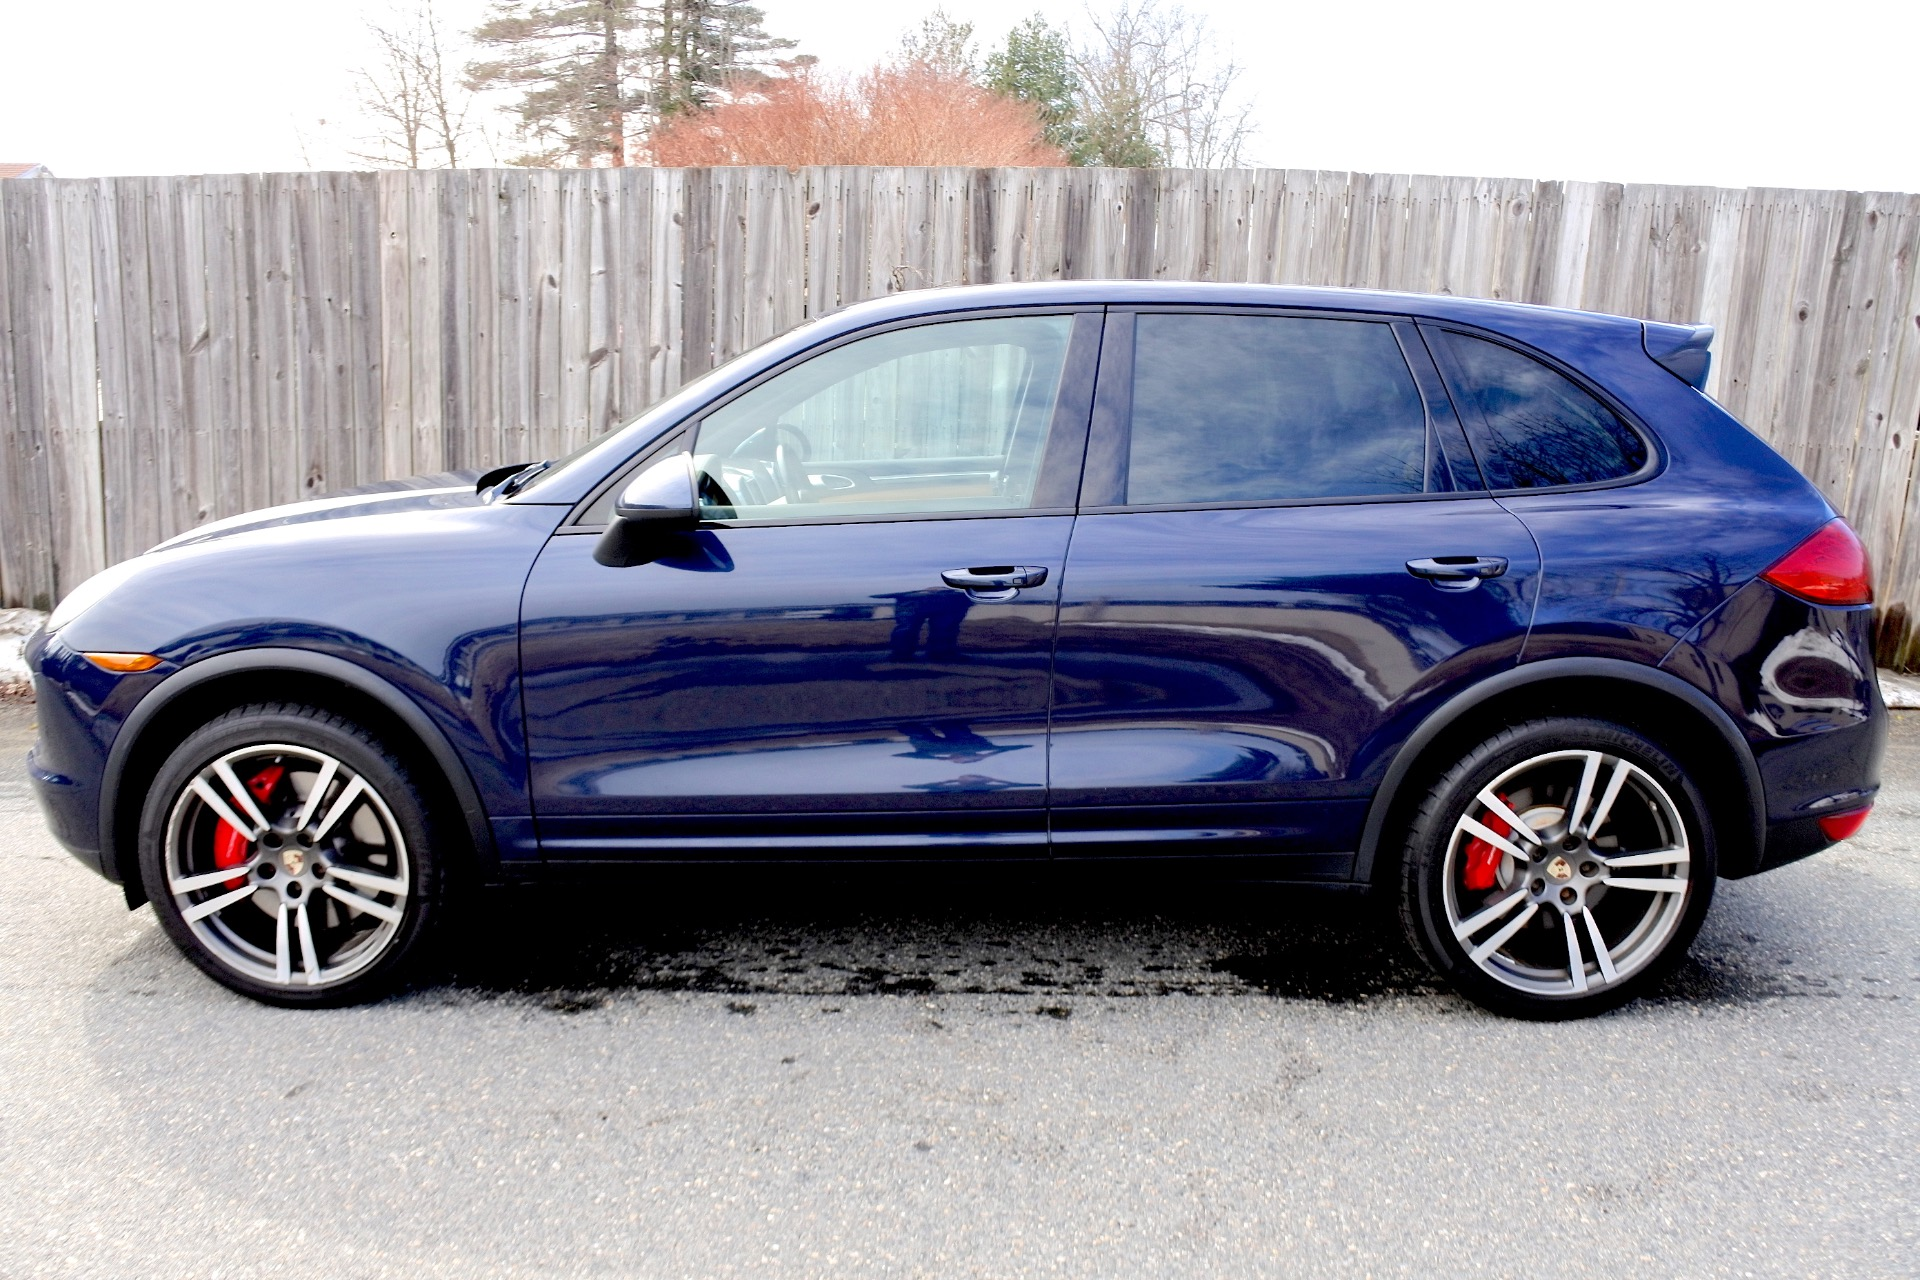 Used 2012 Porsche Cayenne AWD 4dr Turbo Used 2012 Porsche Cayenne AWD 4dr Turbo for sale  at Metro West Motorcars LLC in Shrewsbury MA 2